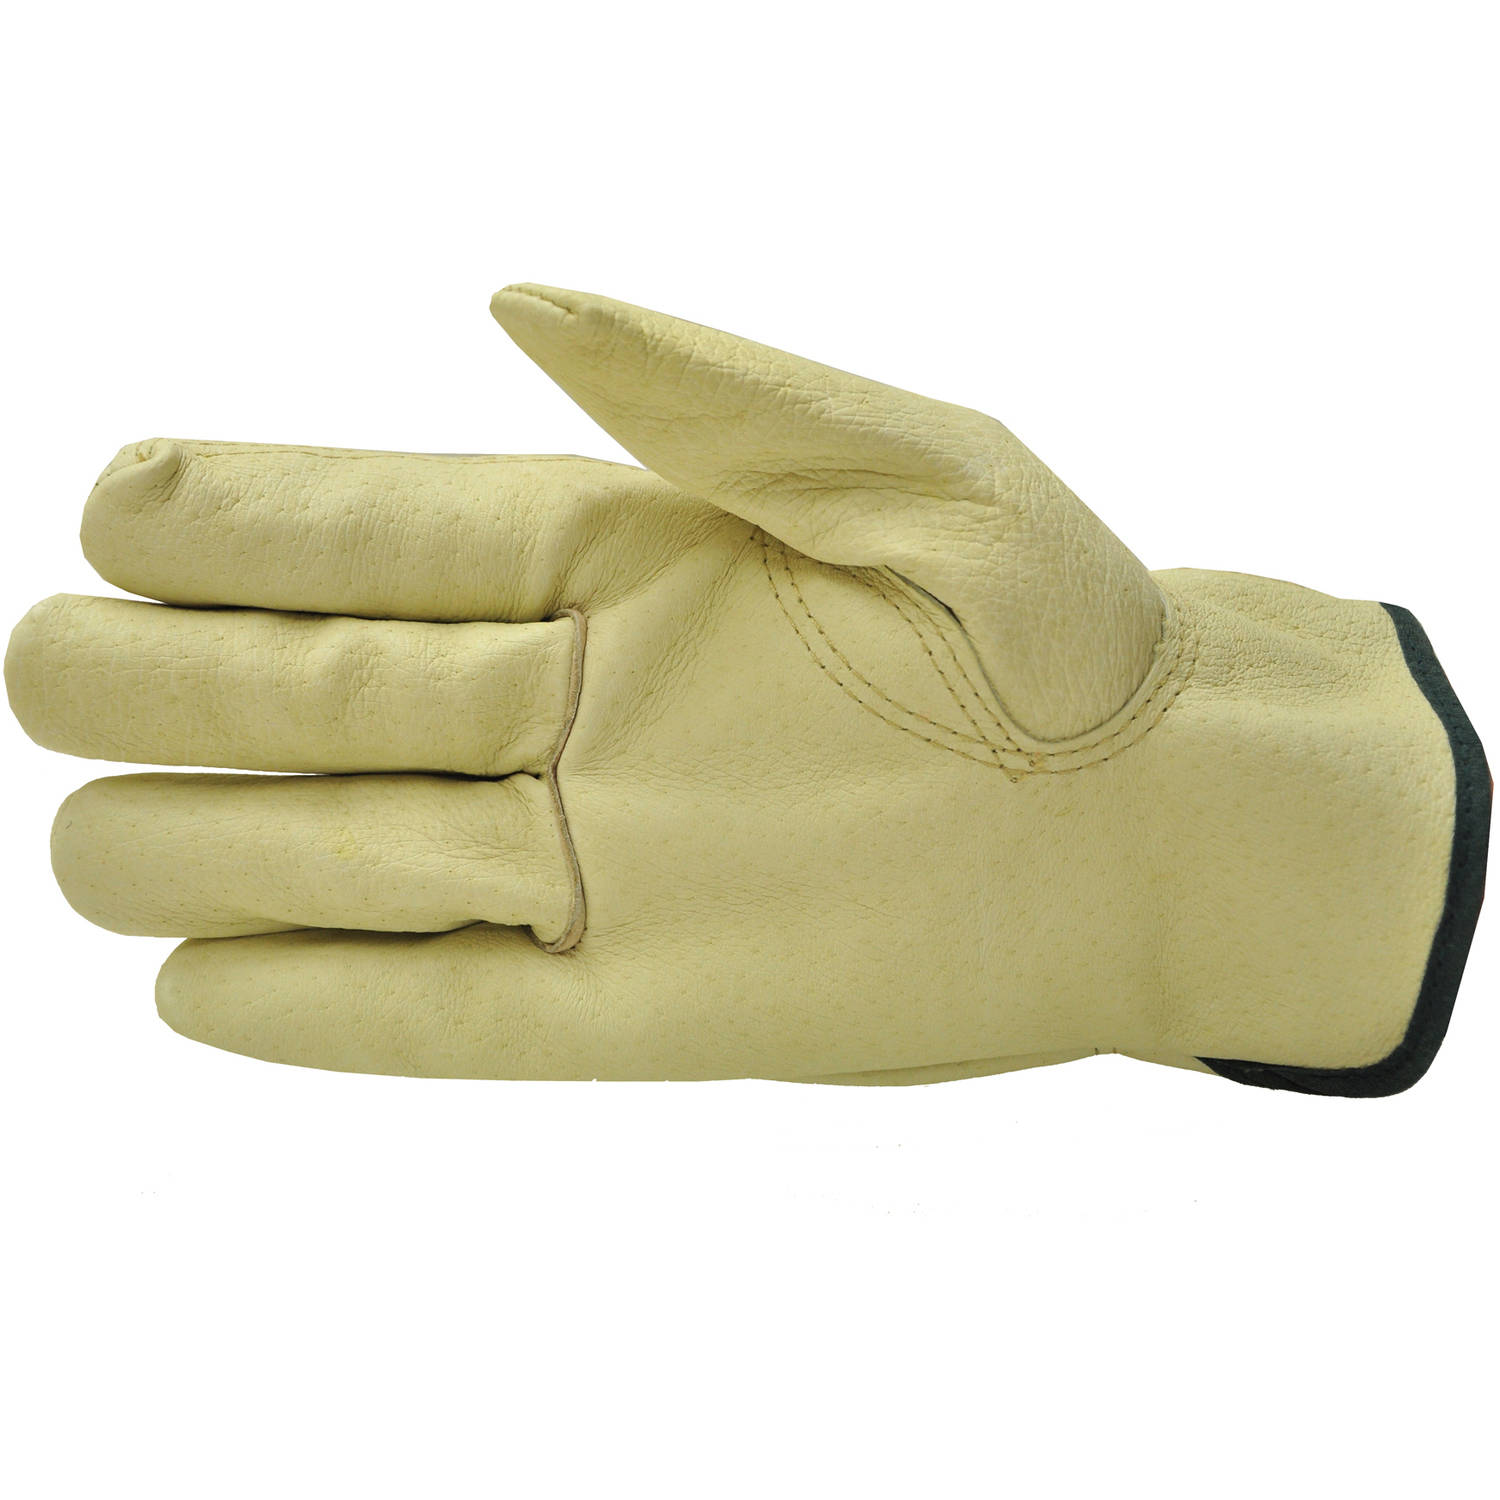 G & F Grain Pigskin Leather Work Gloves, Large, 3 Pairs by G & F